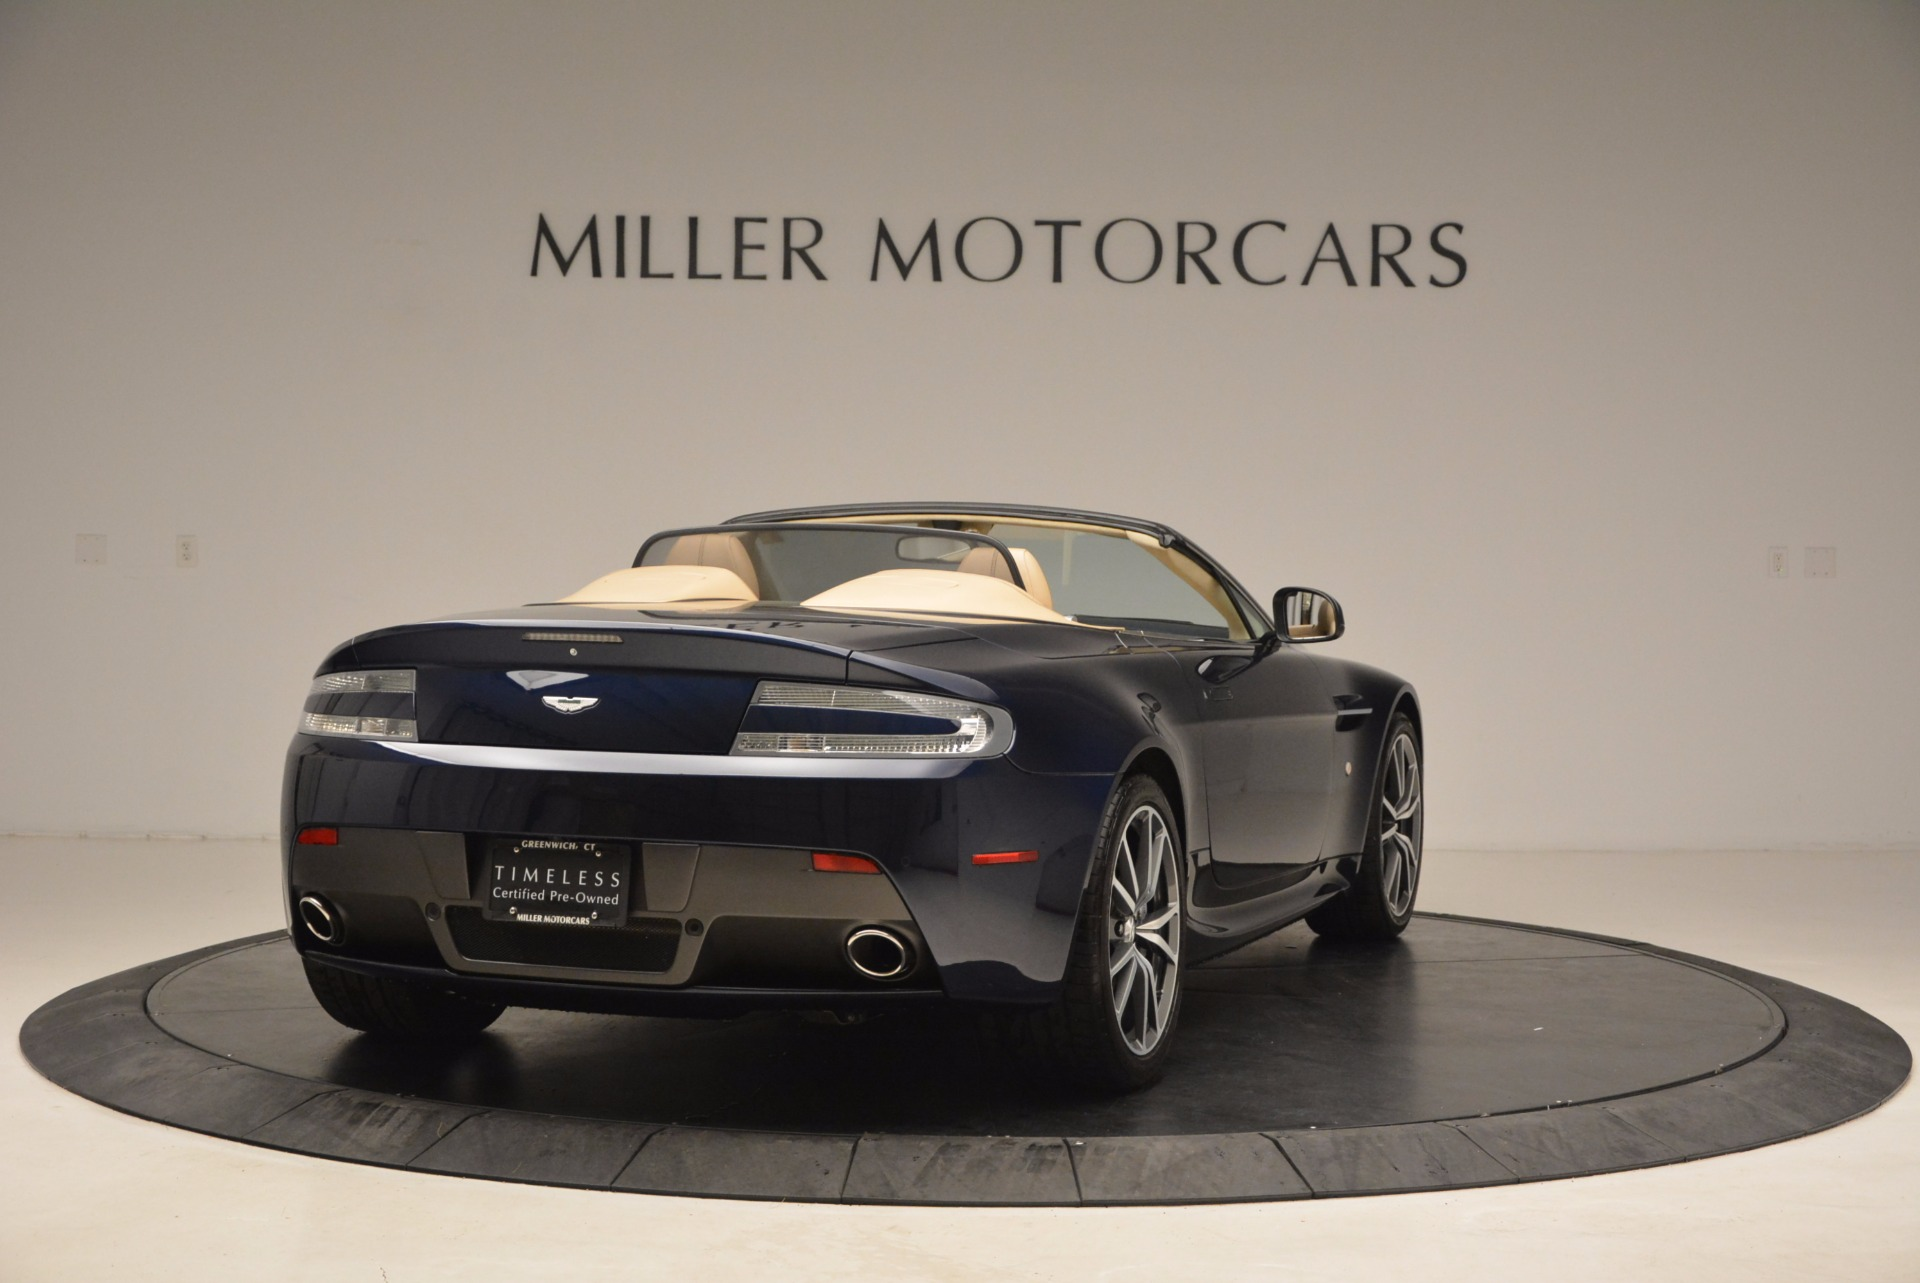 Used 2014 Aston Martin V8 Vantage Roadster For Sale In Greenwich, CT 1623_p7